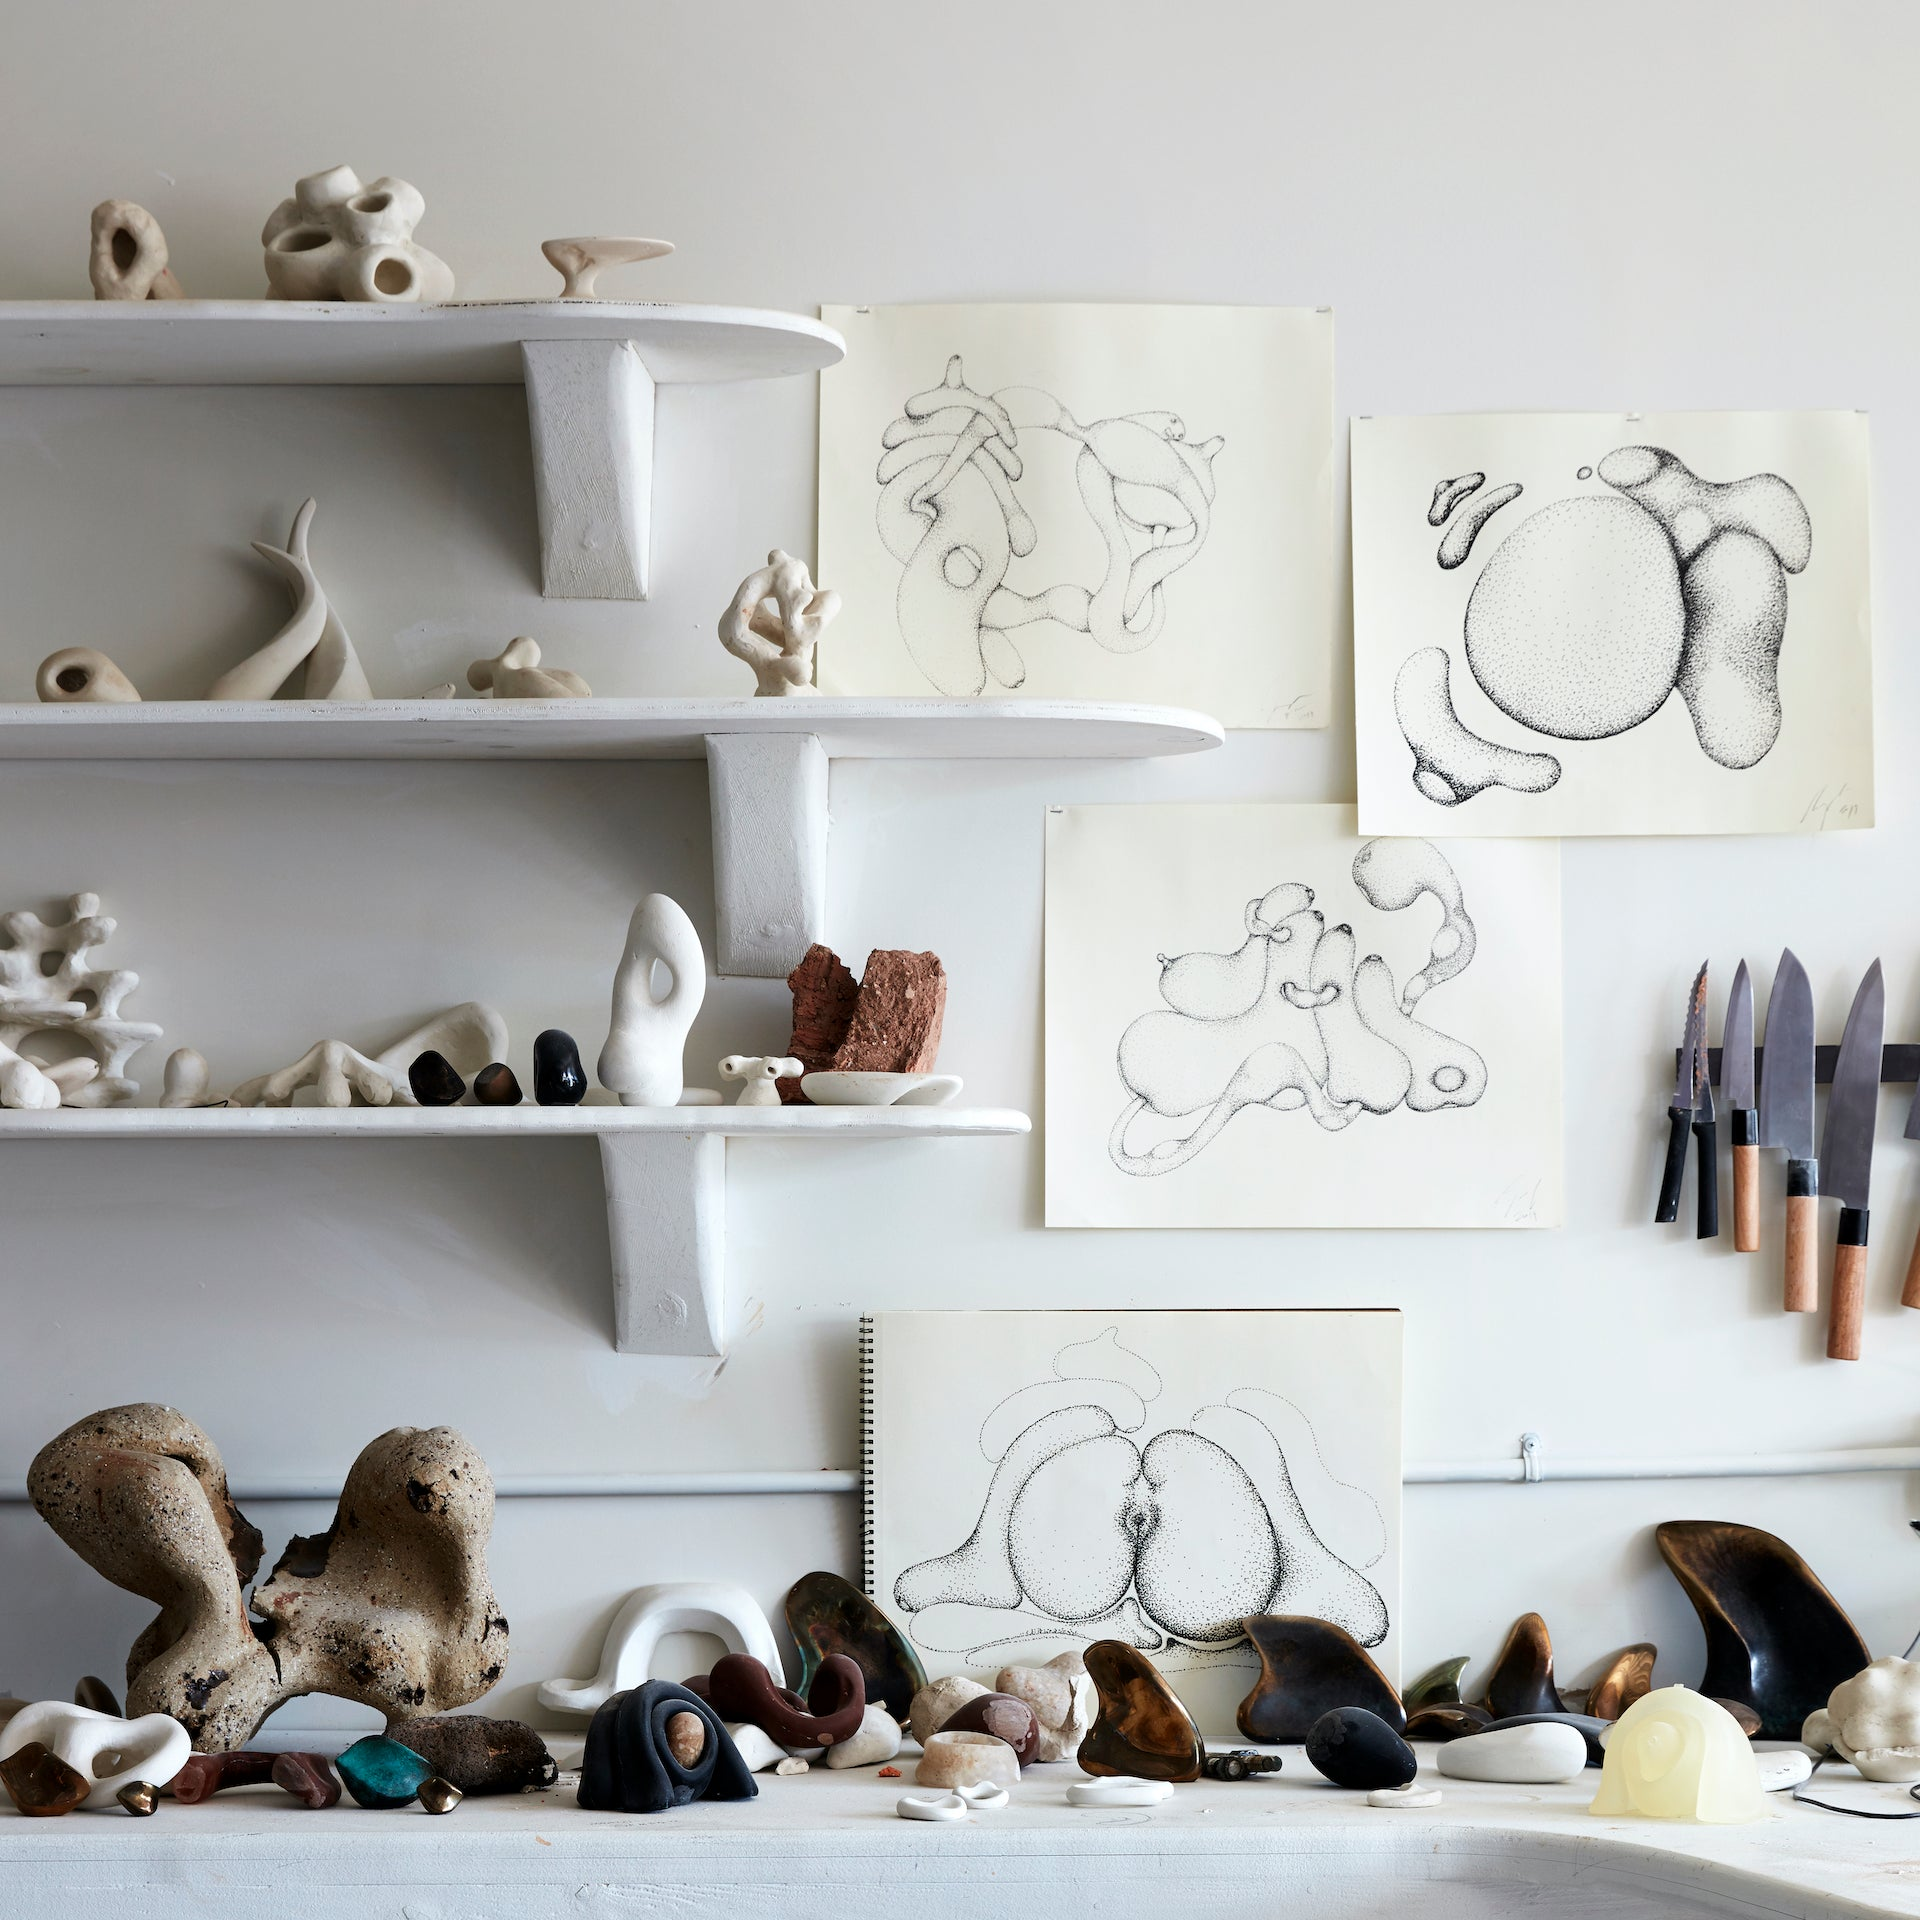 Fertility form drawings and maquettes in Gregory's studio. Photo © Stephen Kent Johnson